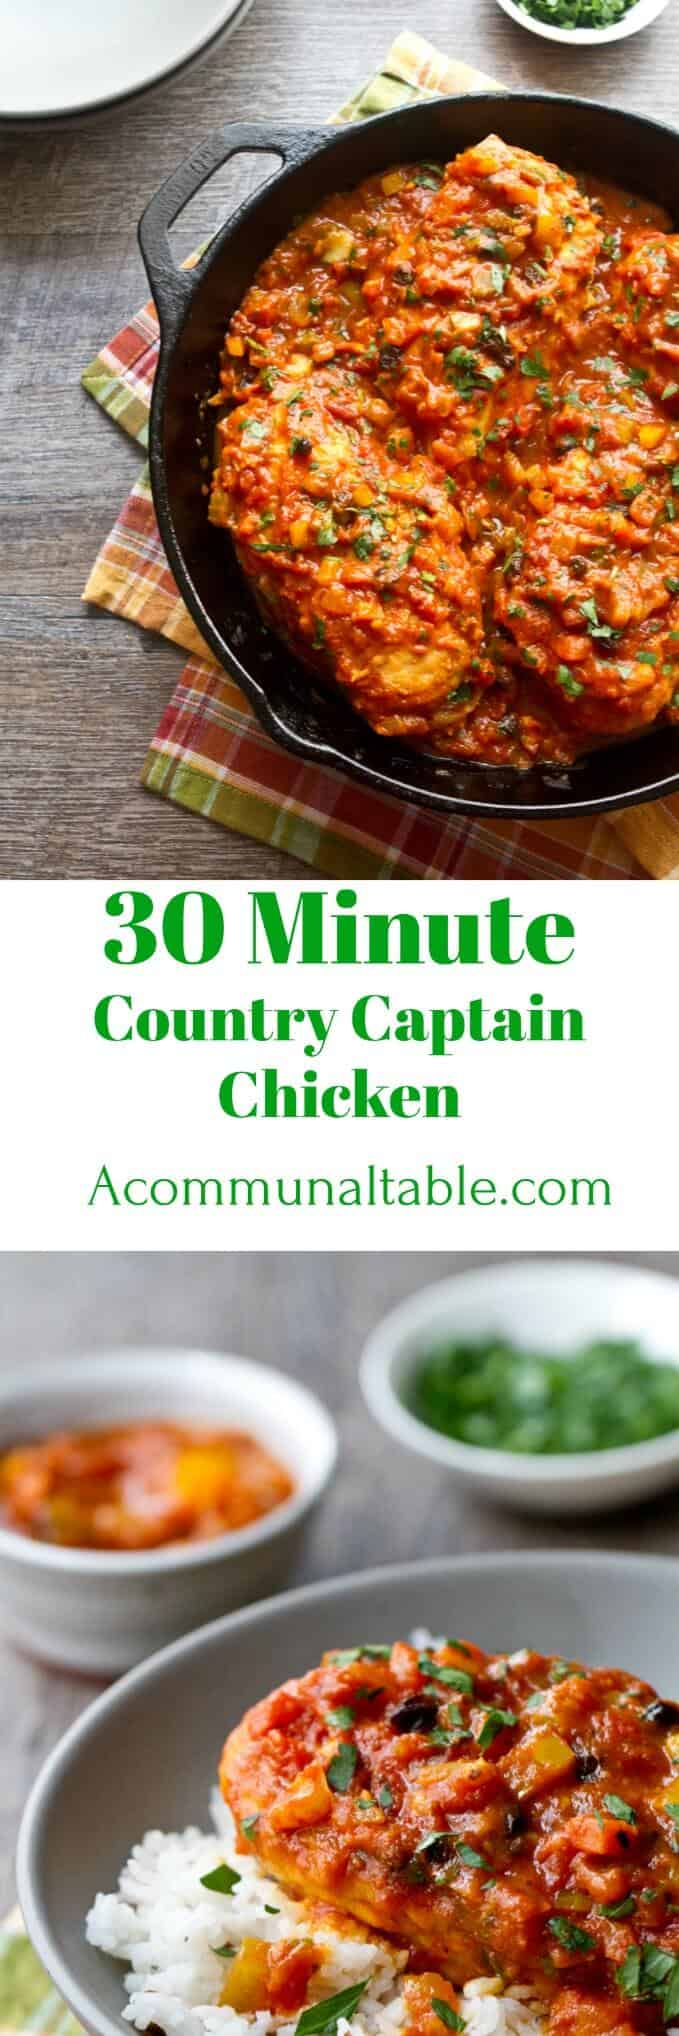 30 minute Country Captain Chicken is richly flavored southern classic. Bottled marinara sauce, curry and currants make this an easy weeknight meal!!